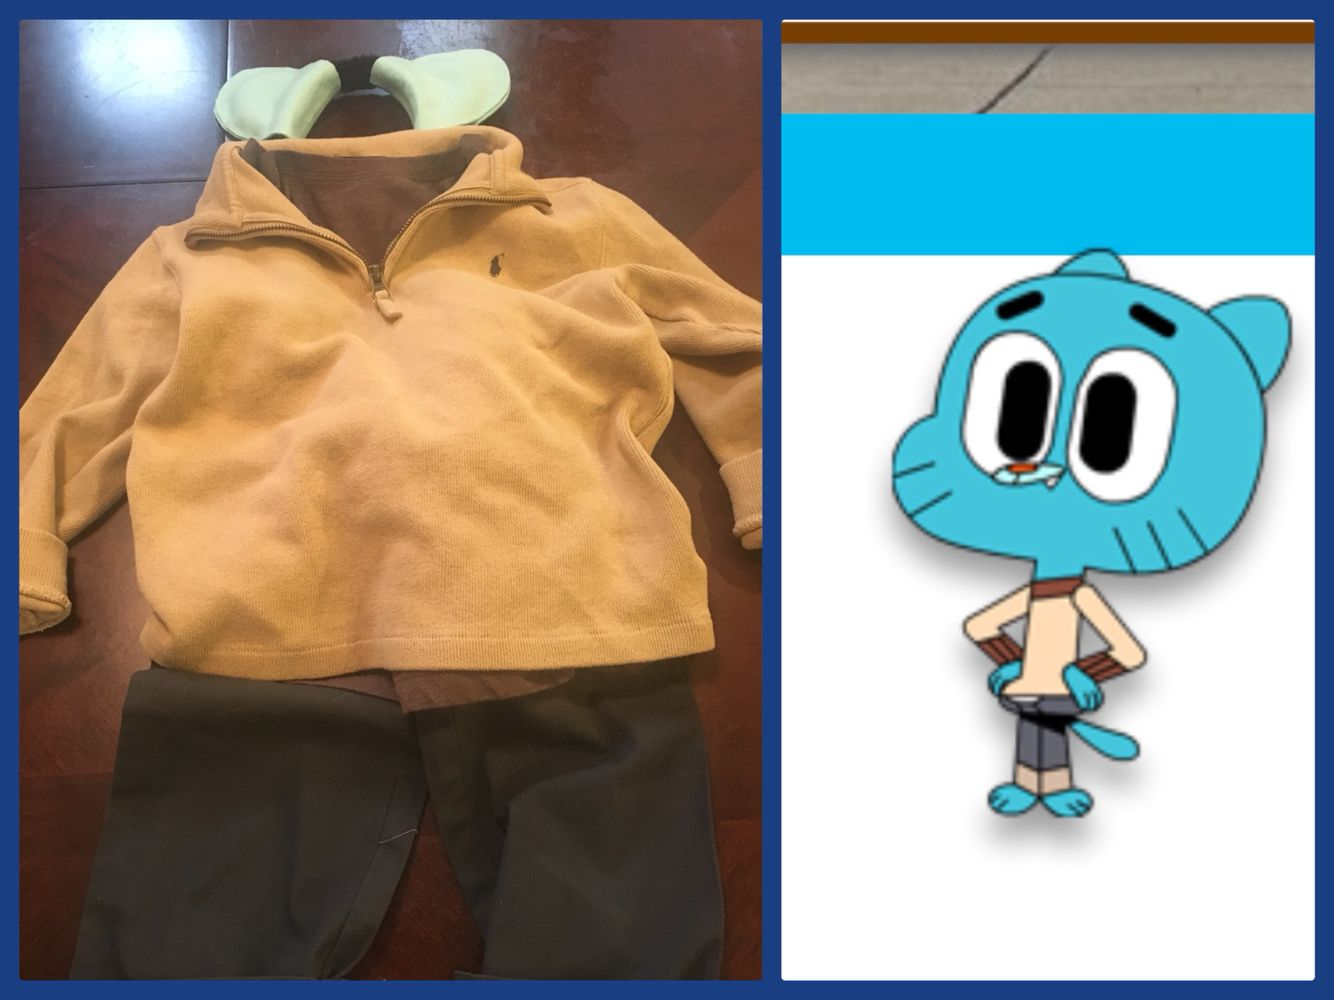 diy gumball watterson costume from the amazing world of gumballdiy gumball watterson costume from the amazing world of gumball just add some black drawn in eyebrows and you\u0027re good to go!